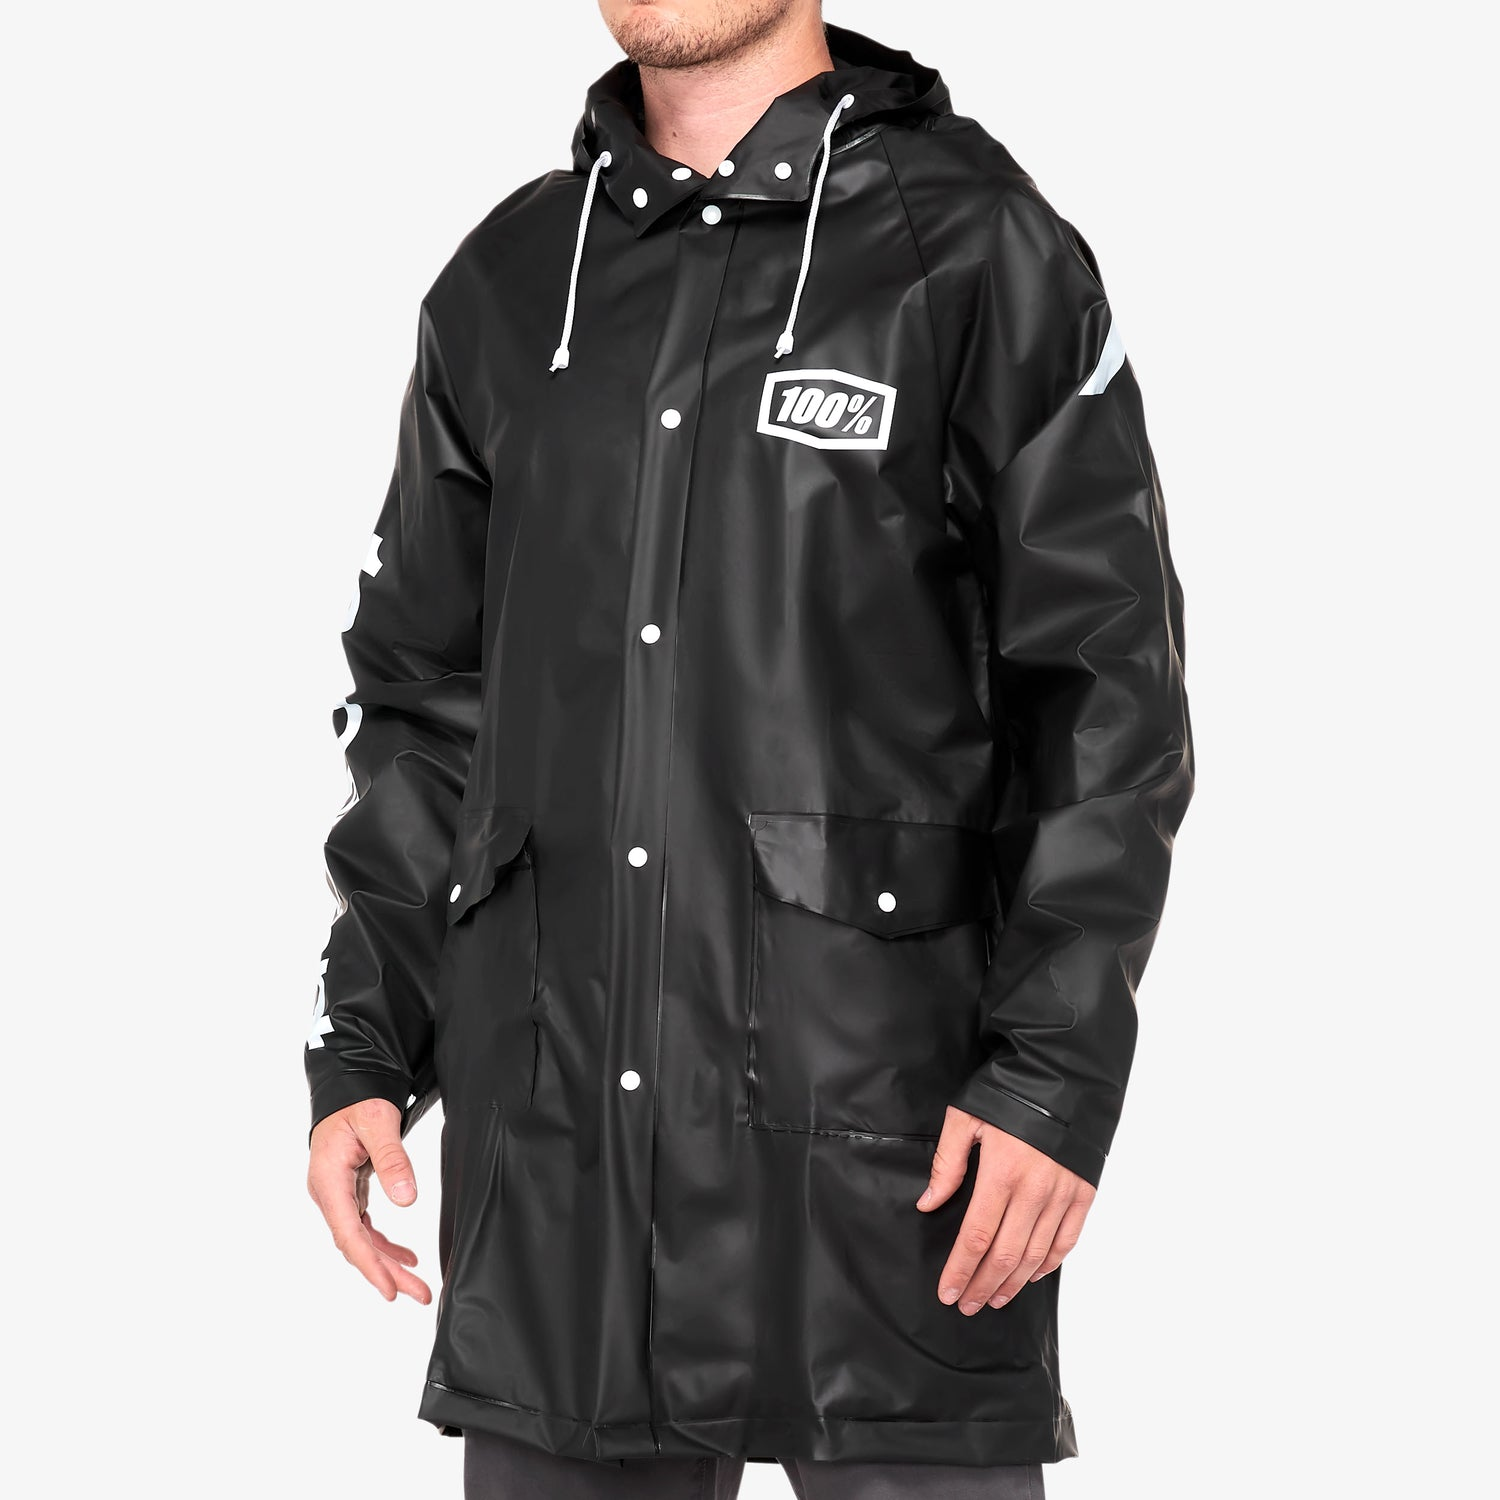 TORRENT Mechanic's Raincoat Black